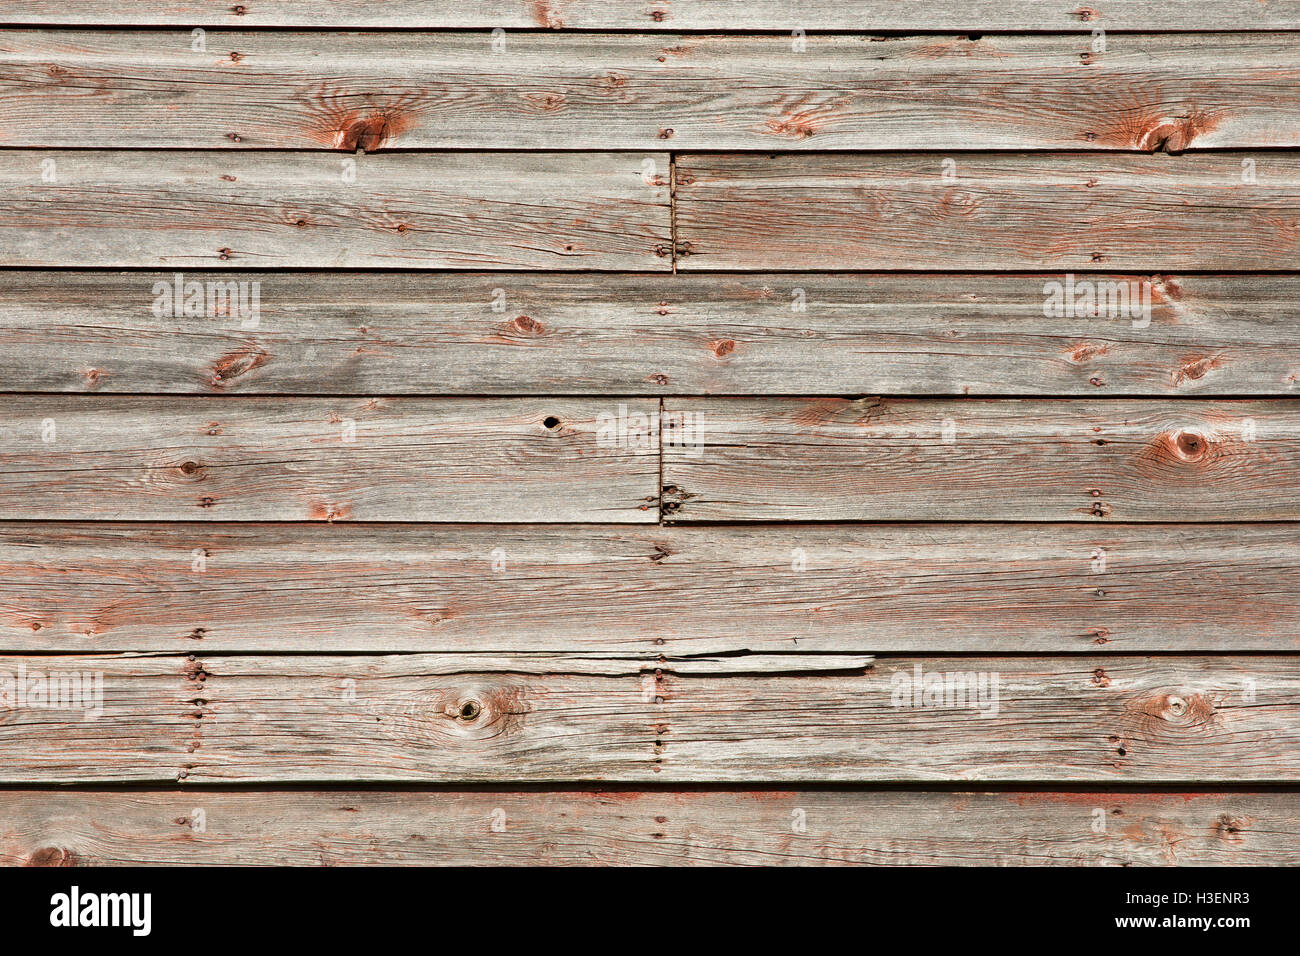 barns timber products barn weather harvest by wood siding